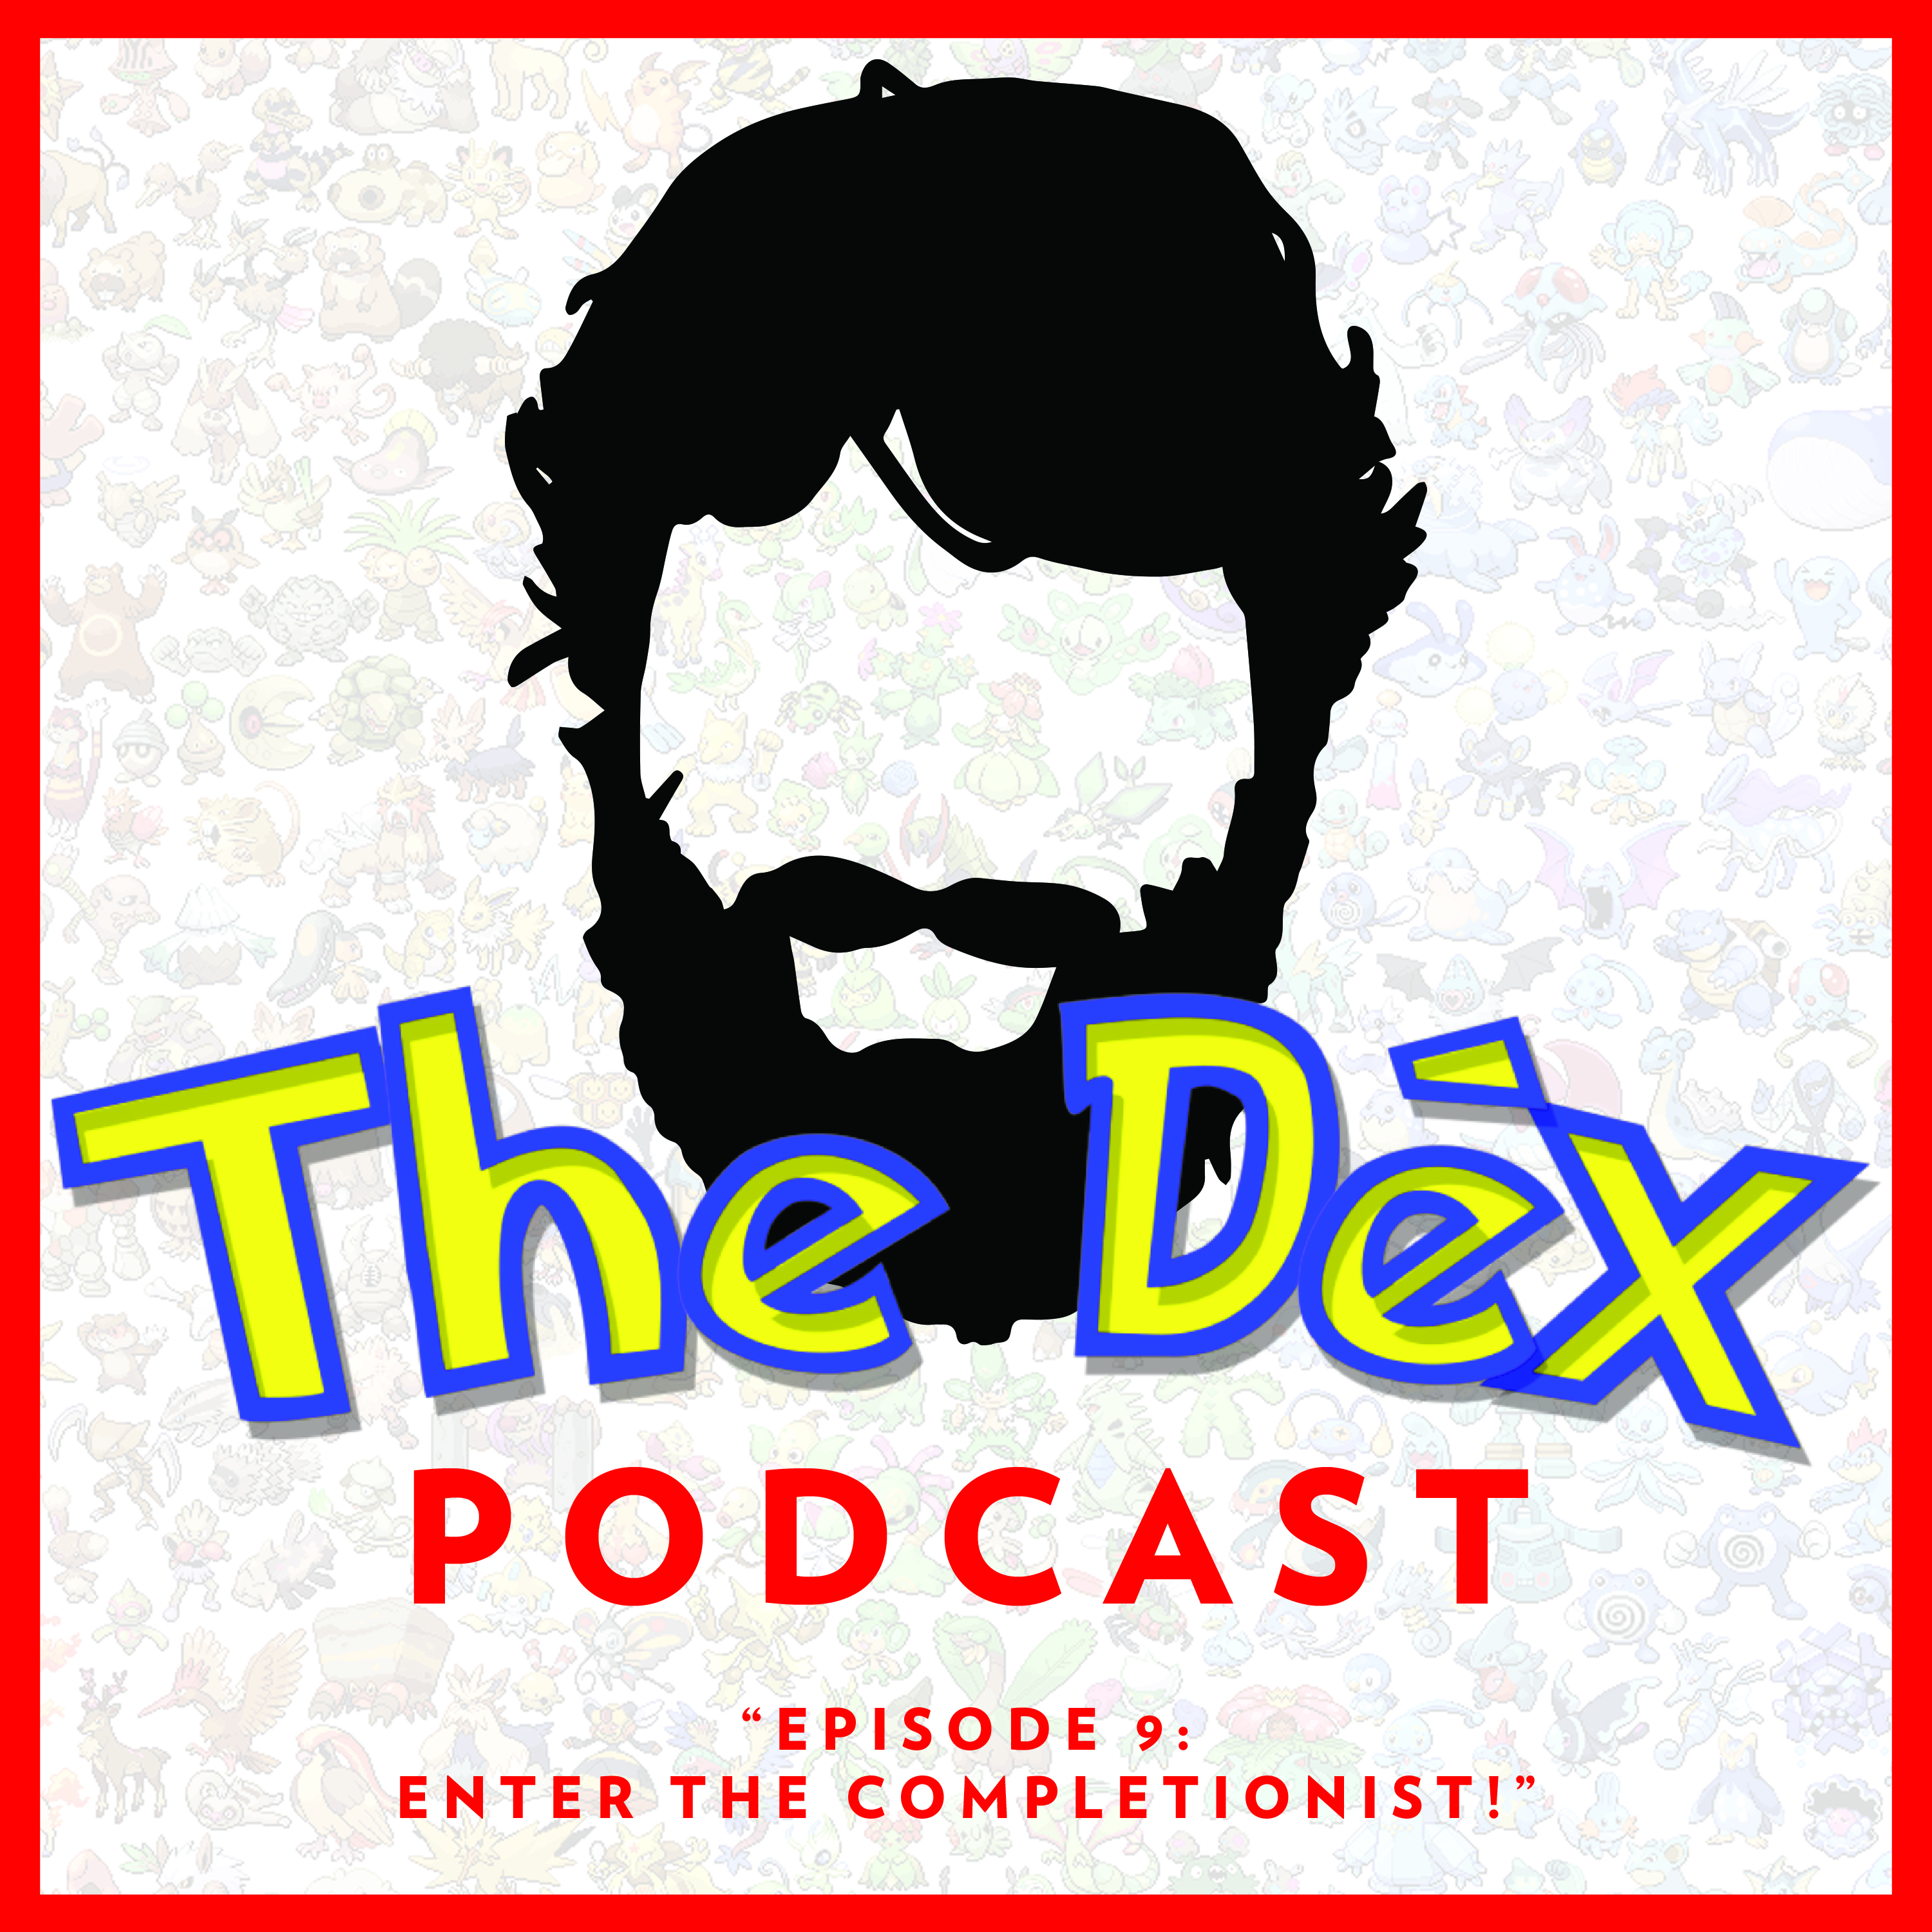 The Dex! Podcast #9: Enter The Completionist!